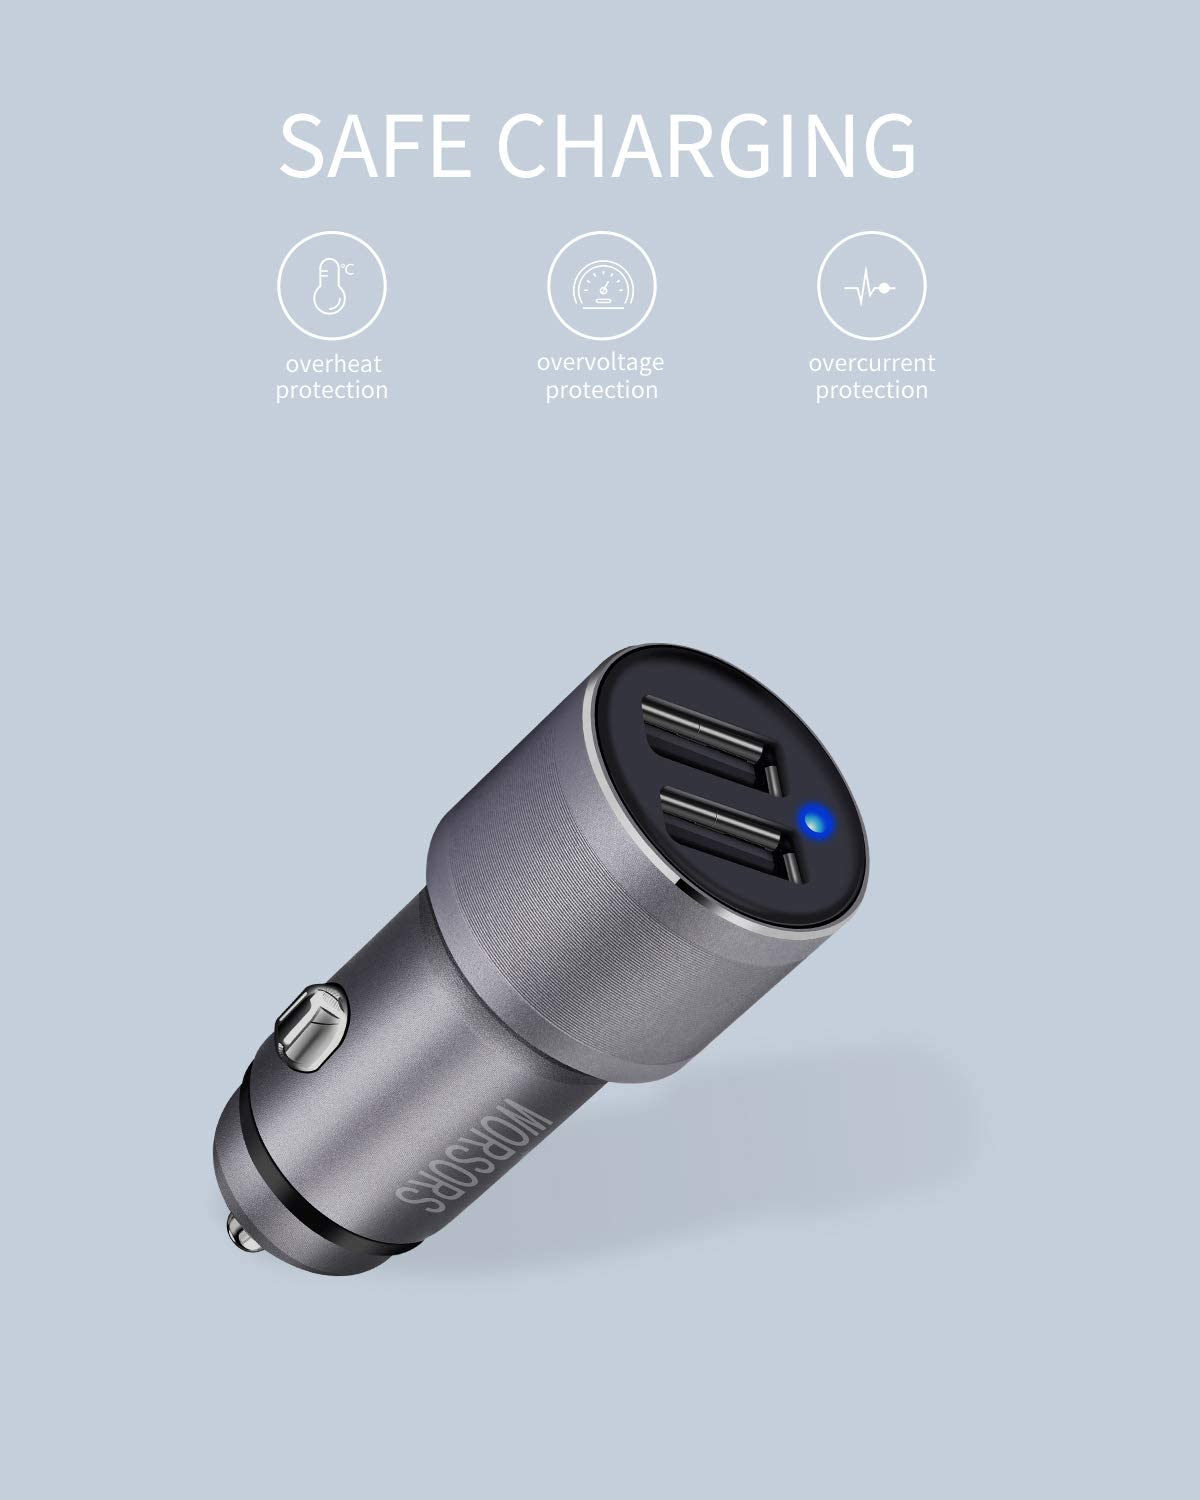 iPad//Mini//Air Worsors Metal Car Charger with 3.3ft Braided Cable Cord Dual USB 4.8A//24W Fast Charging Car Adapter Compatible for Apple iPhone 11//Pro//Max//XS//XR//X//SE 2020//8 Plus//8//7//6S//6//SE//5S//5C